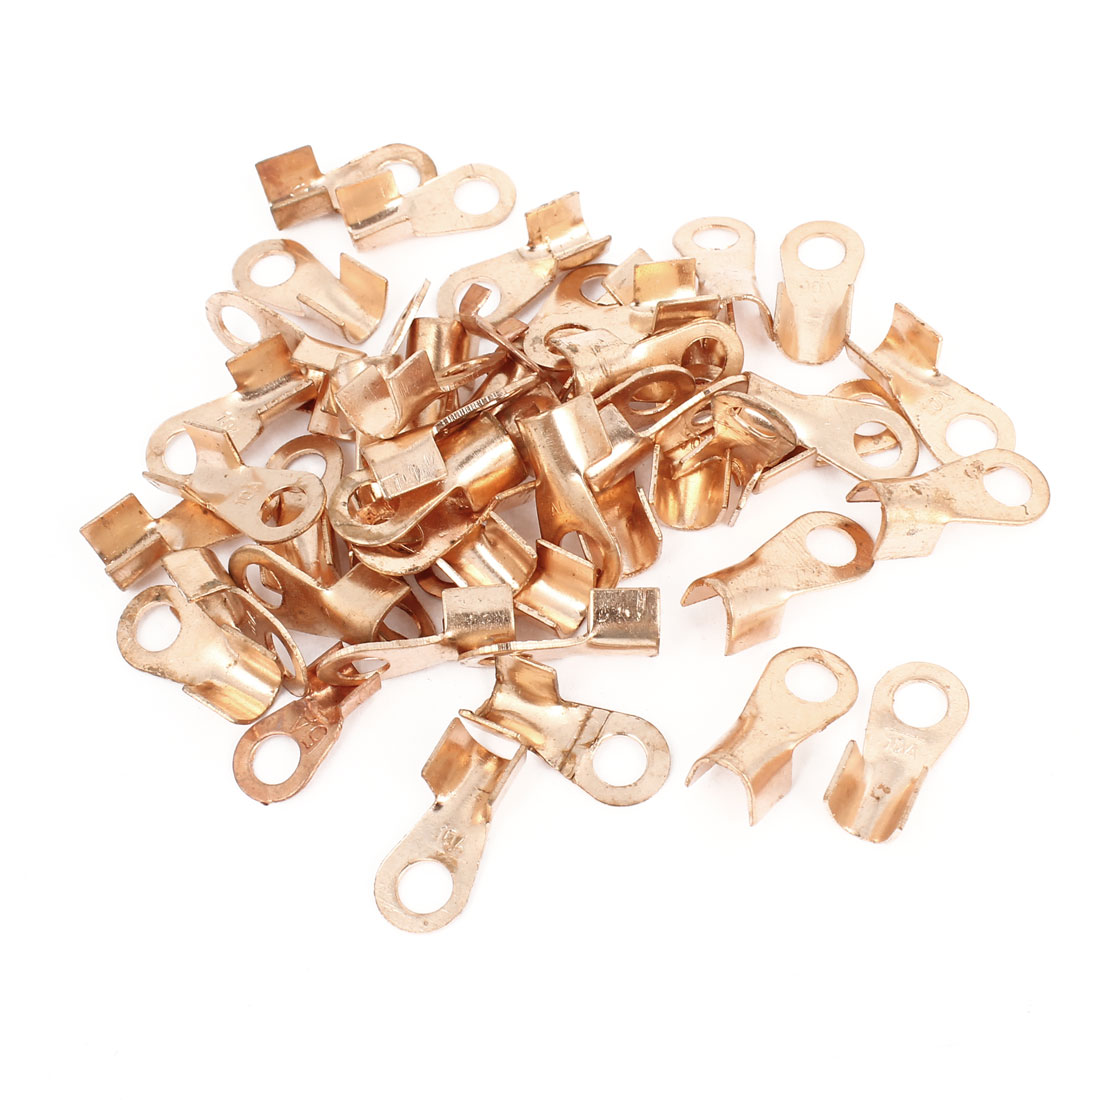 50 Pcs 10A Open Cable Connector Ring Lug Copper Passing Through Terminals